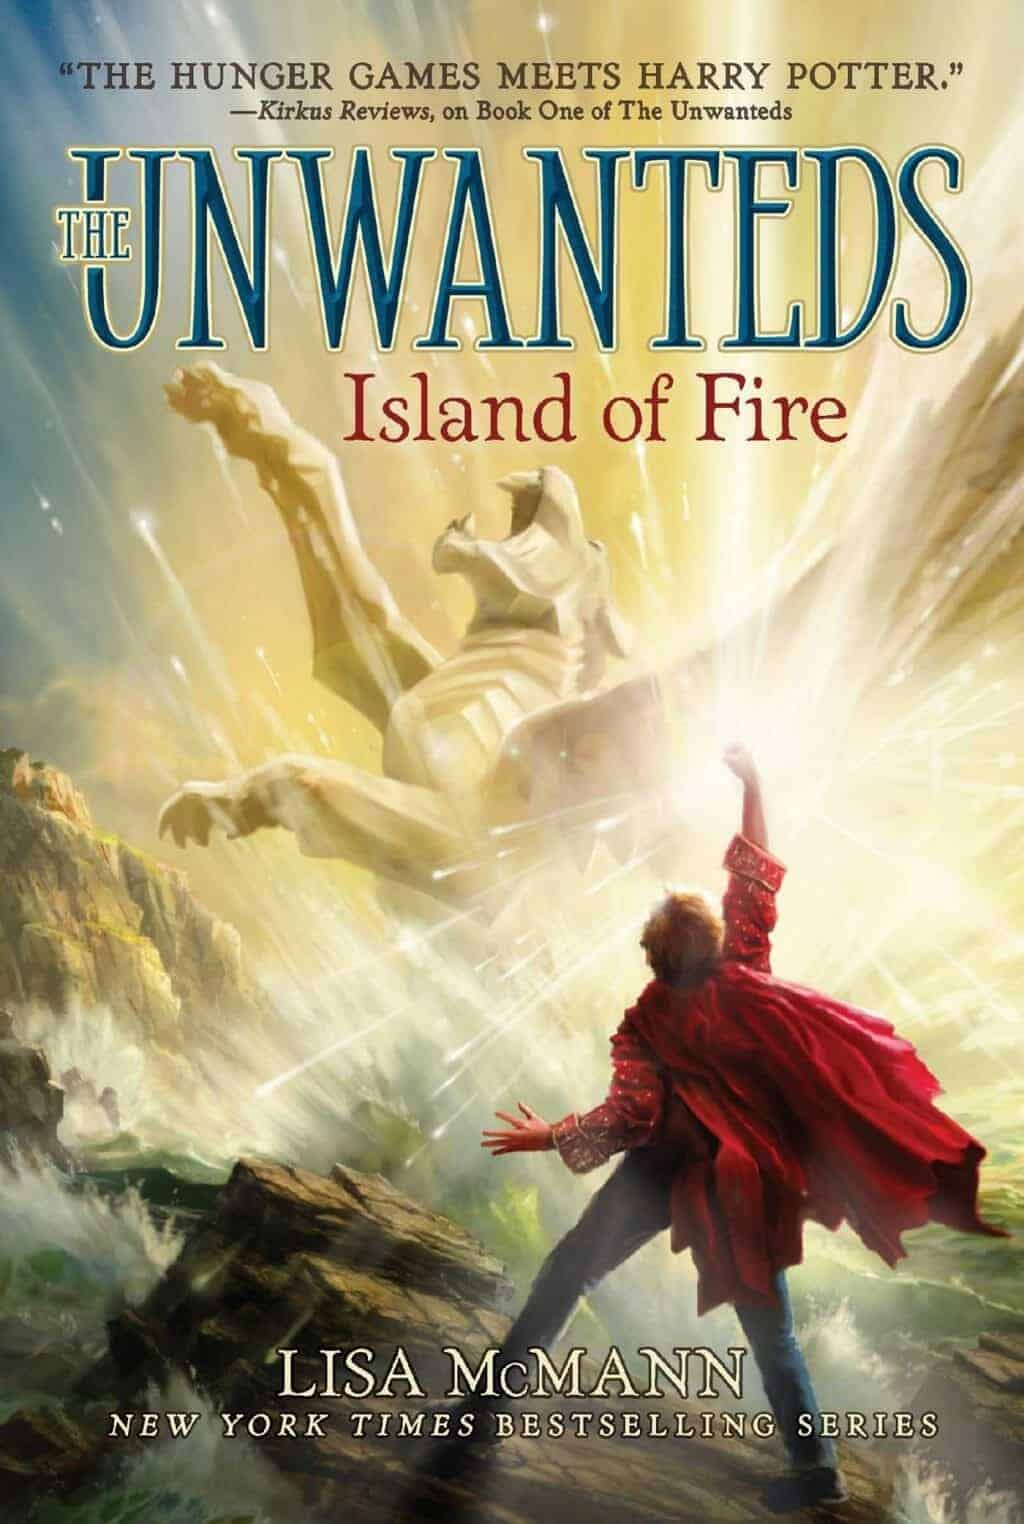 Unwanteds - Island of Fire Audiobook Free Download